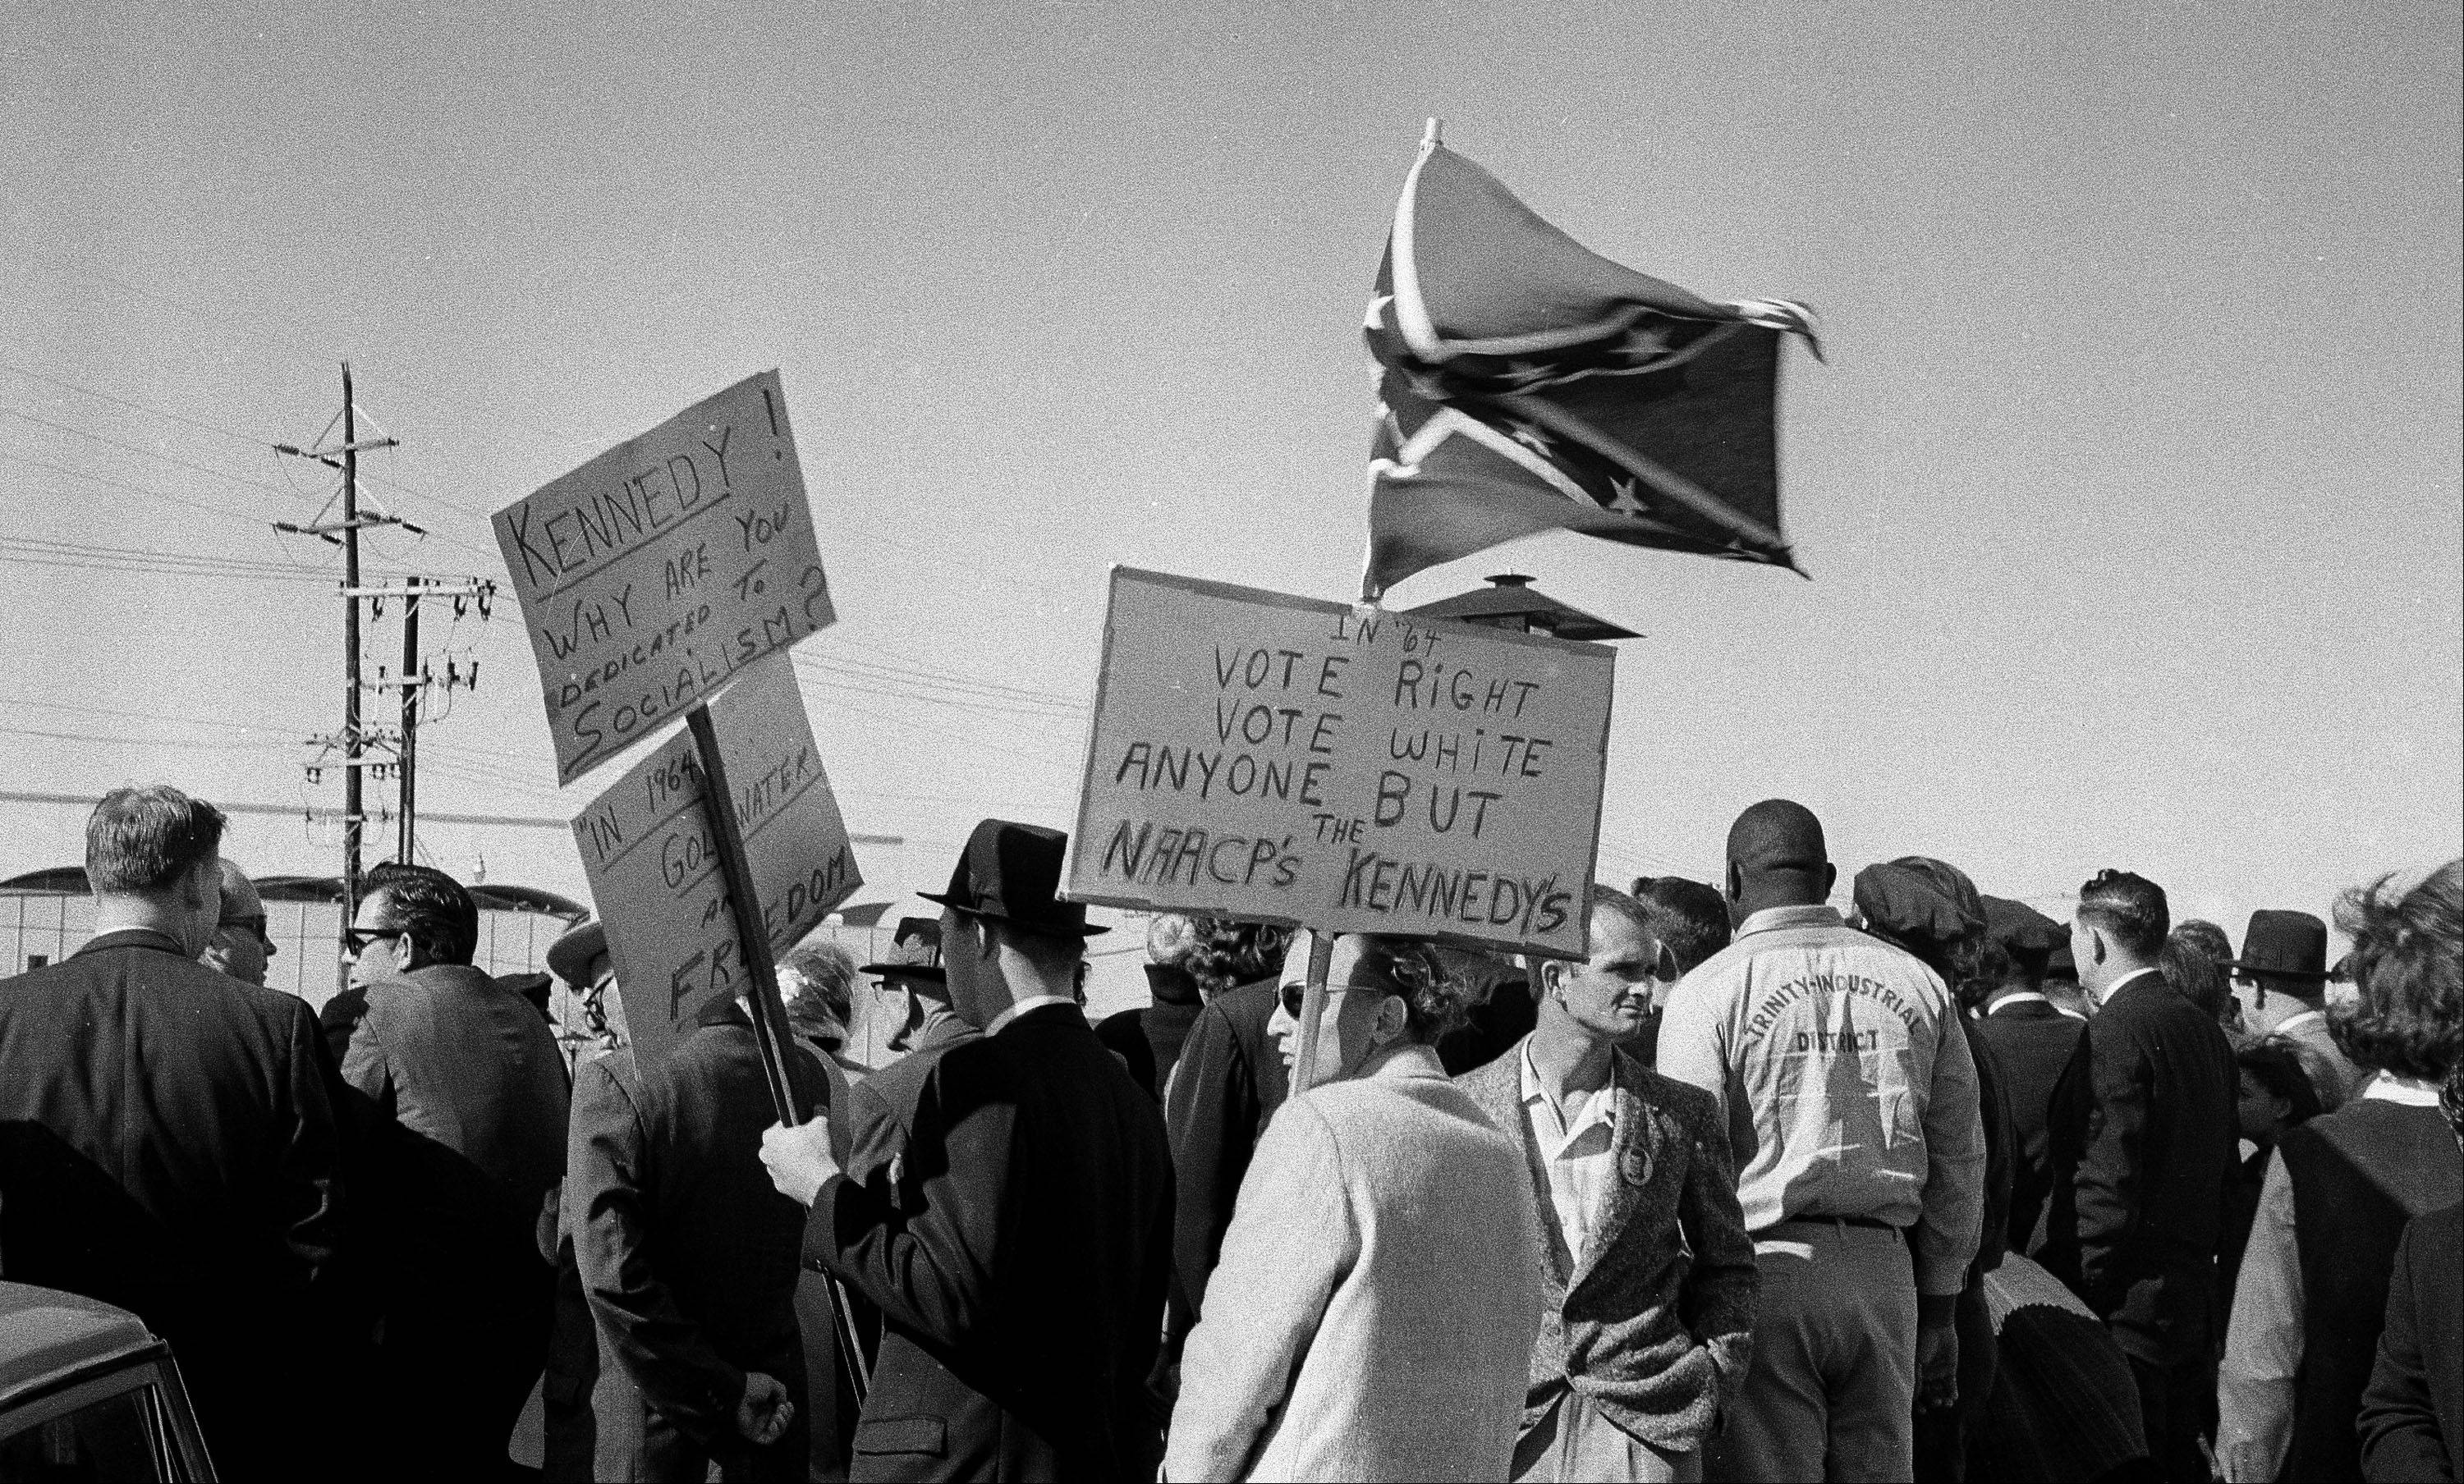 On Nov. 22, 1963, right-wing protesters carrying a Confederate flag and anti-Kennedy placards await the arrival of President John F. Kennedy at Love Field in Dallas. The 50th anniversary of Kennedy's assassination throws a new spotlight on the deep hostility toward Kennedy that some Dallasites voiced before the assassination.